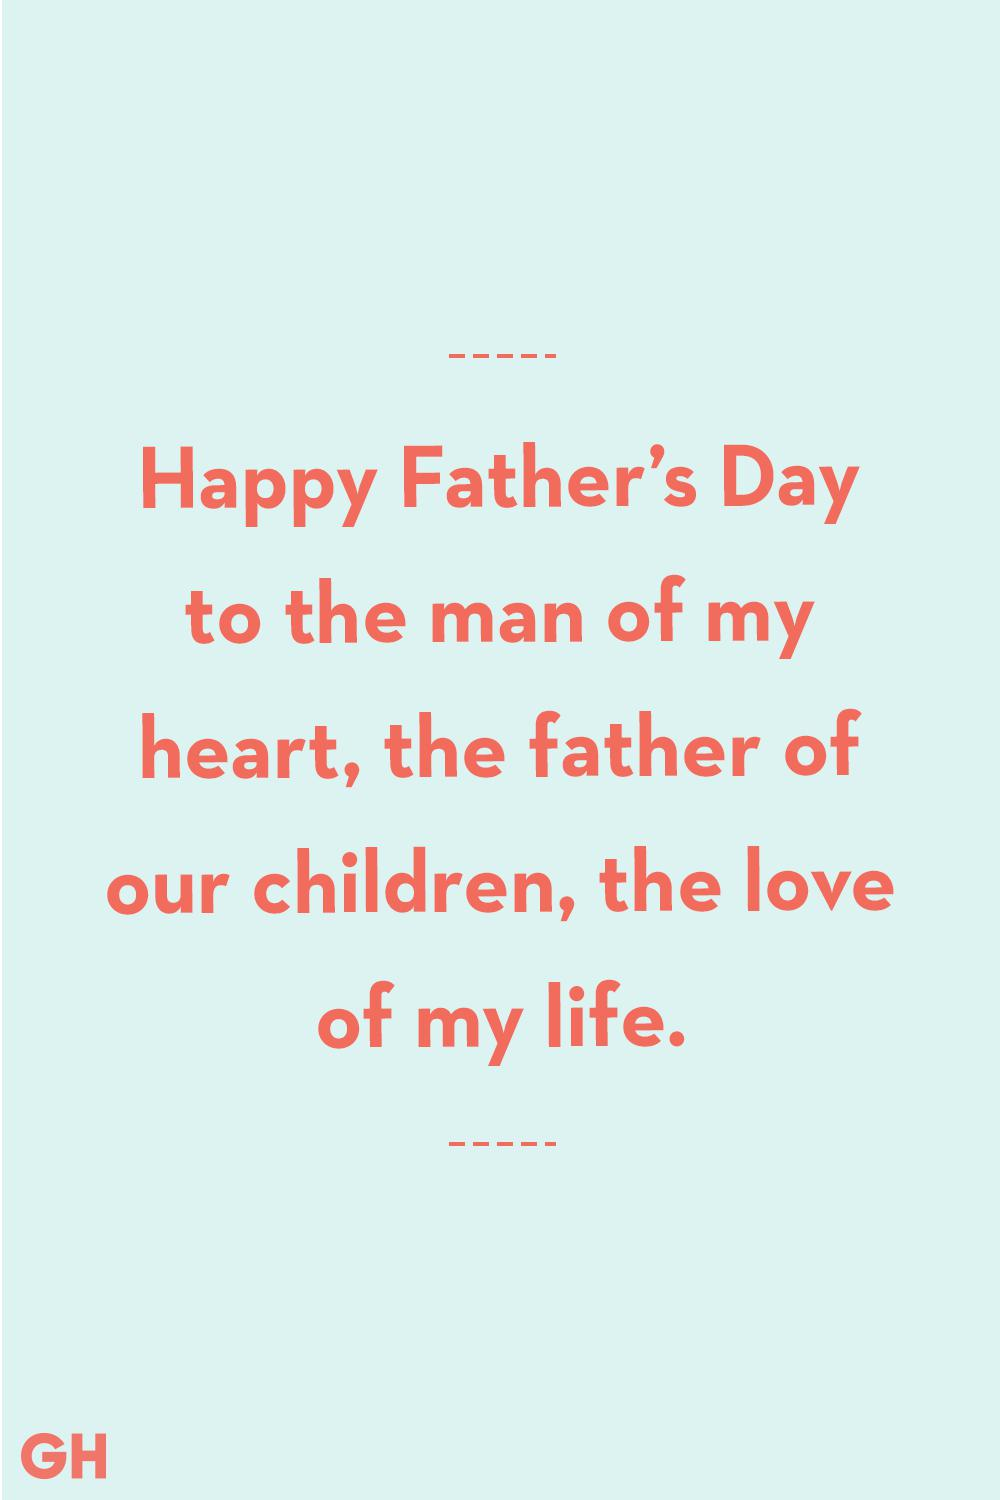 Happy Fathers Day Images Fathers Day Pictures Photos